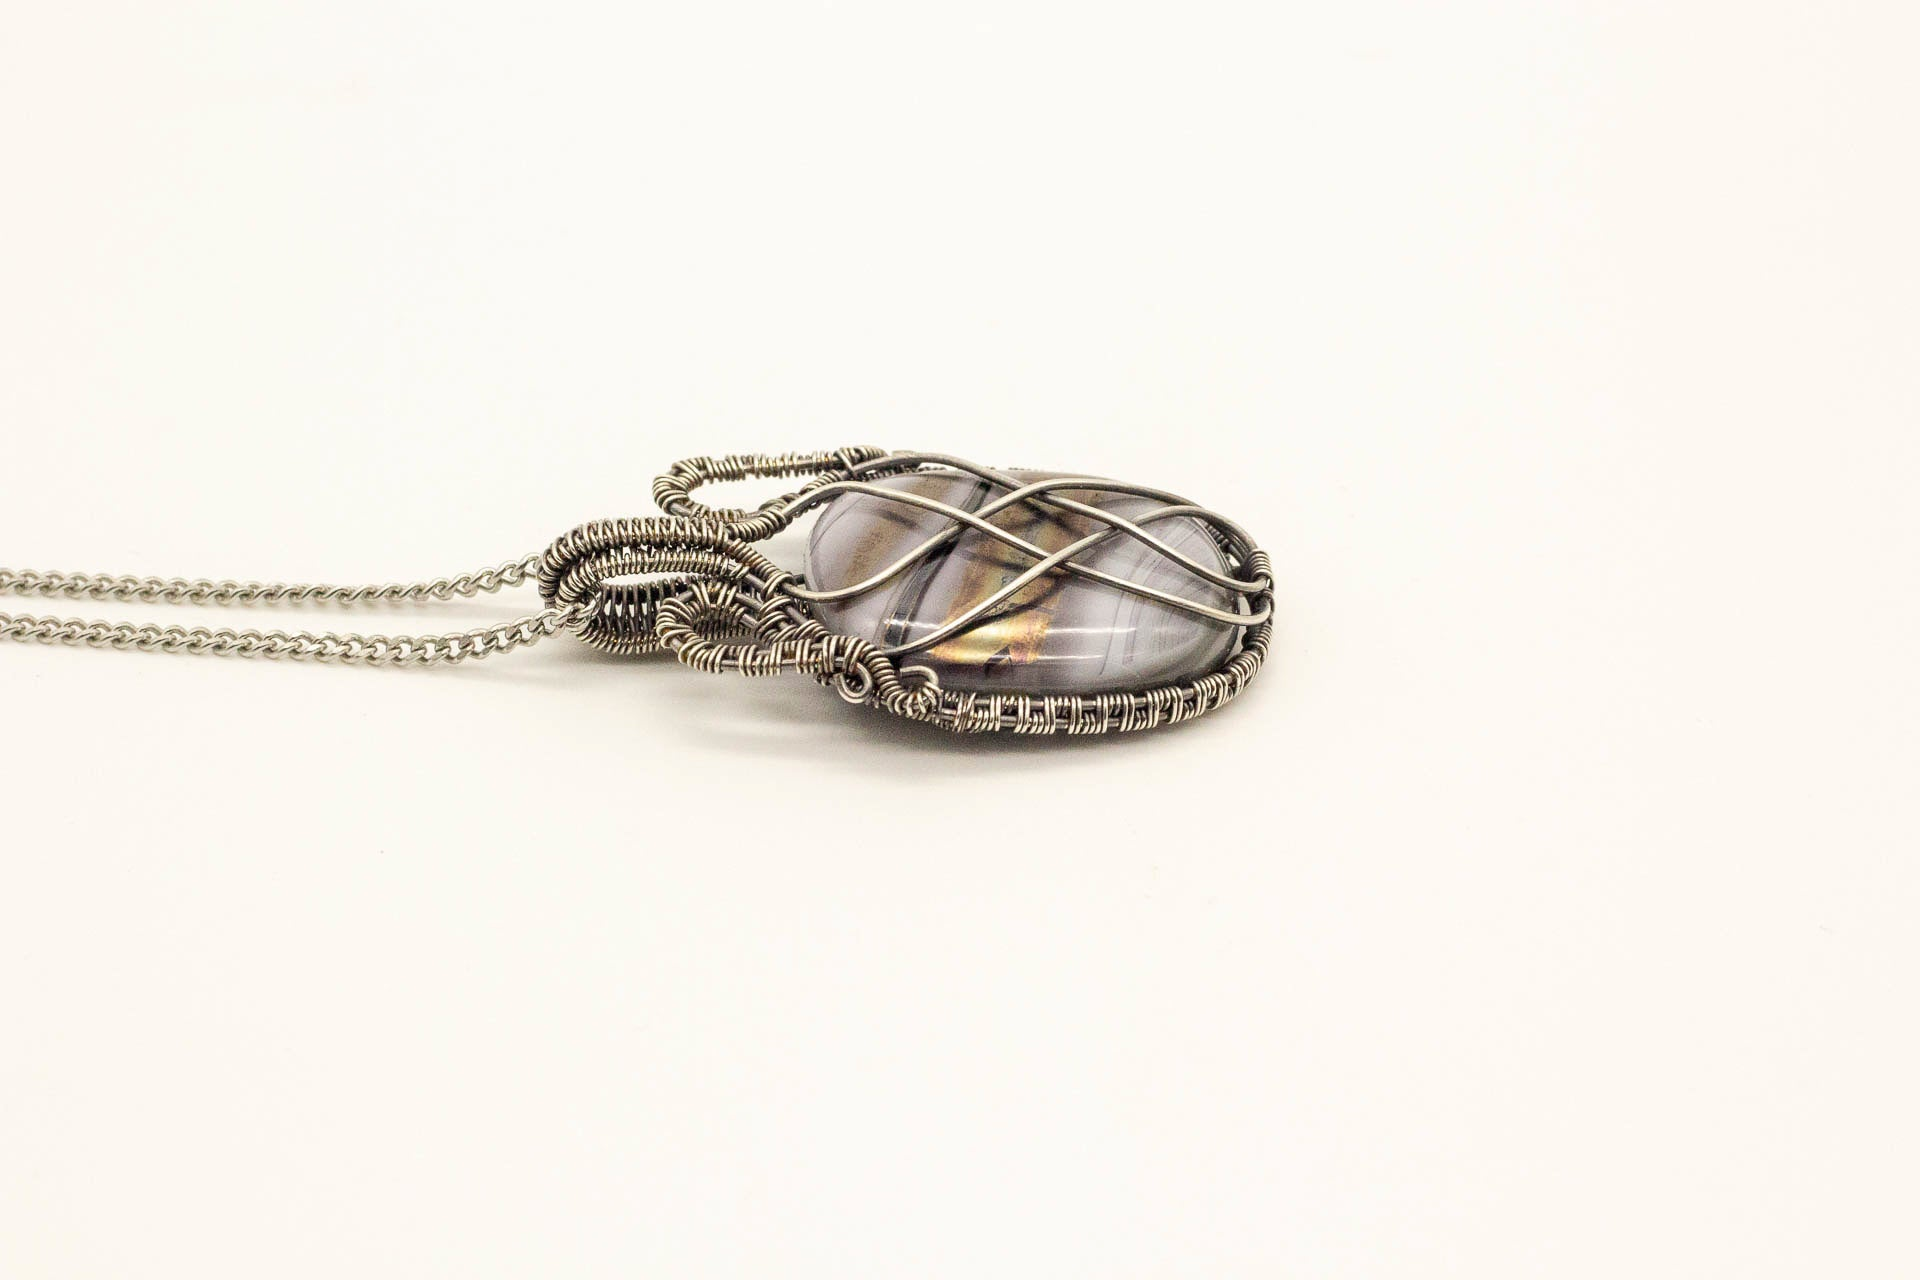 streaked-grey-statement-pendant-sterling-silver-wire-wrapped-nymph-in-the-woods-jewelry